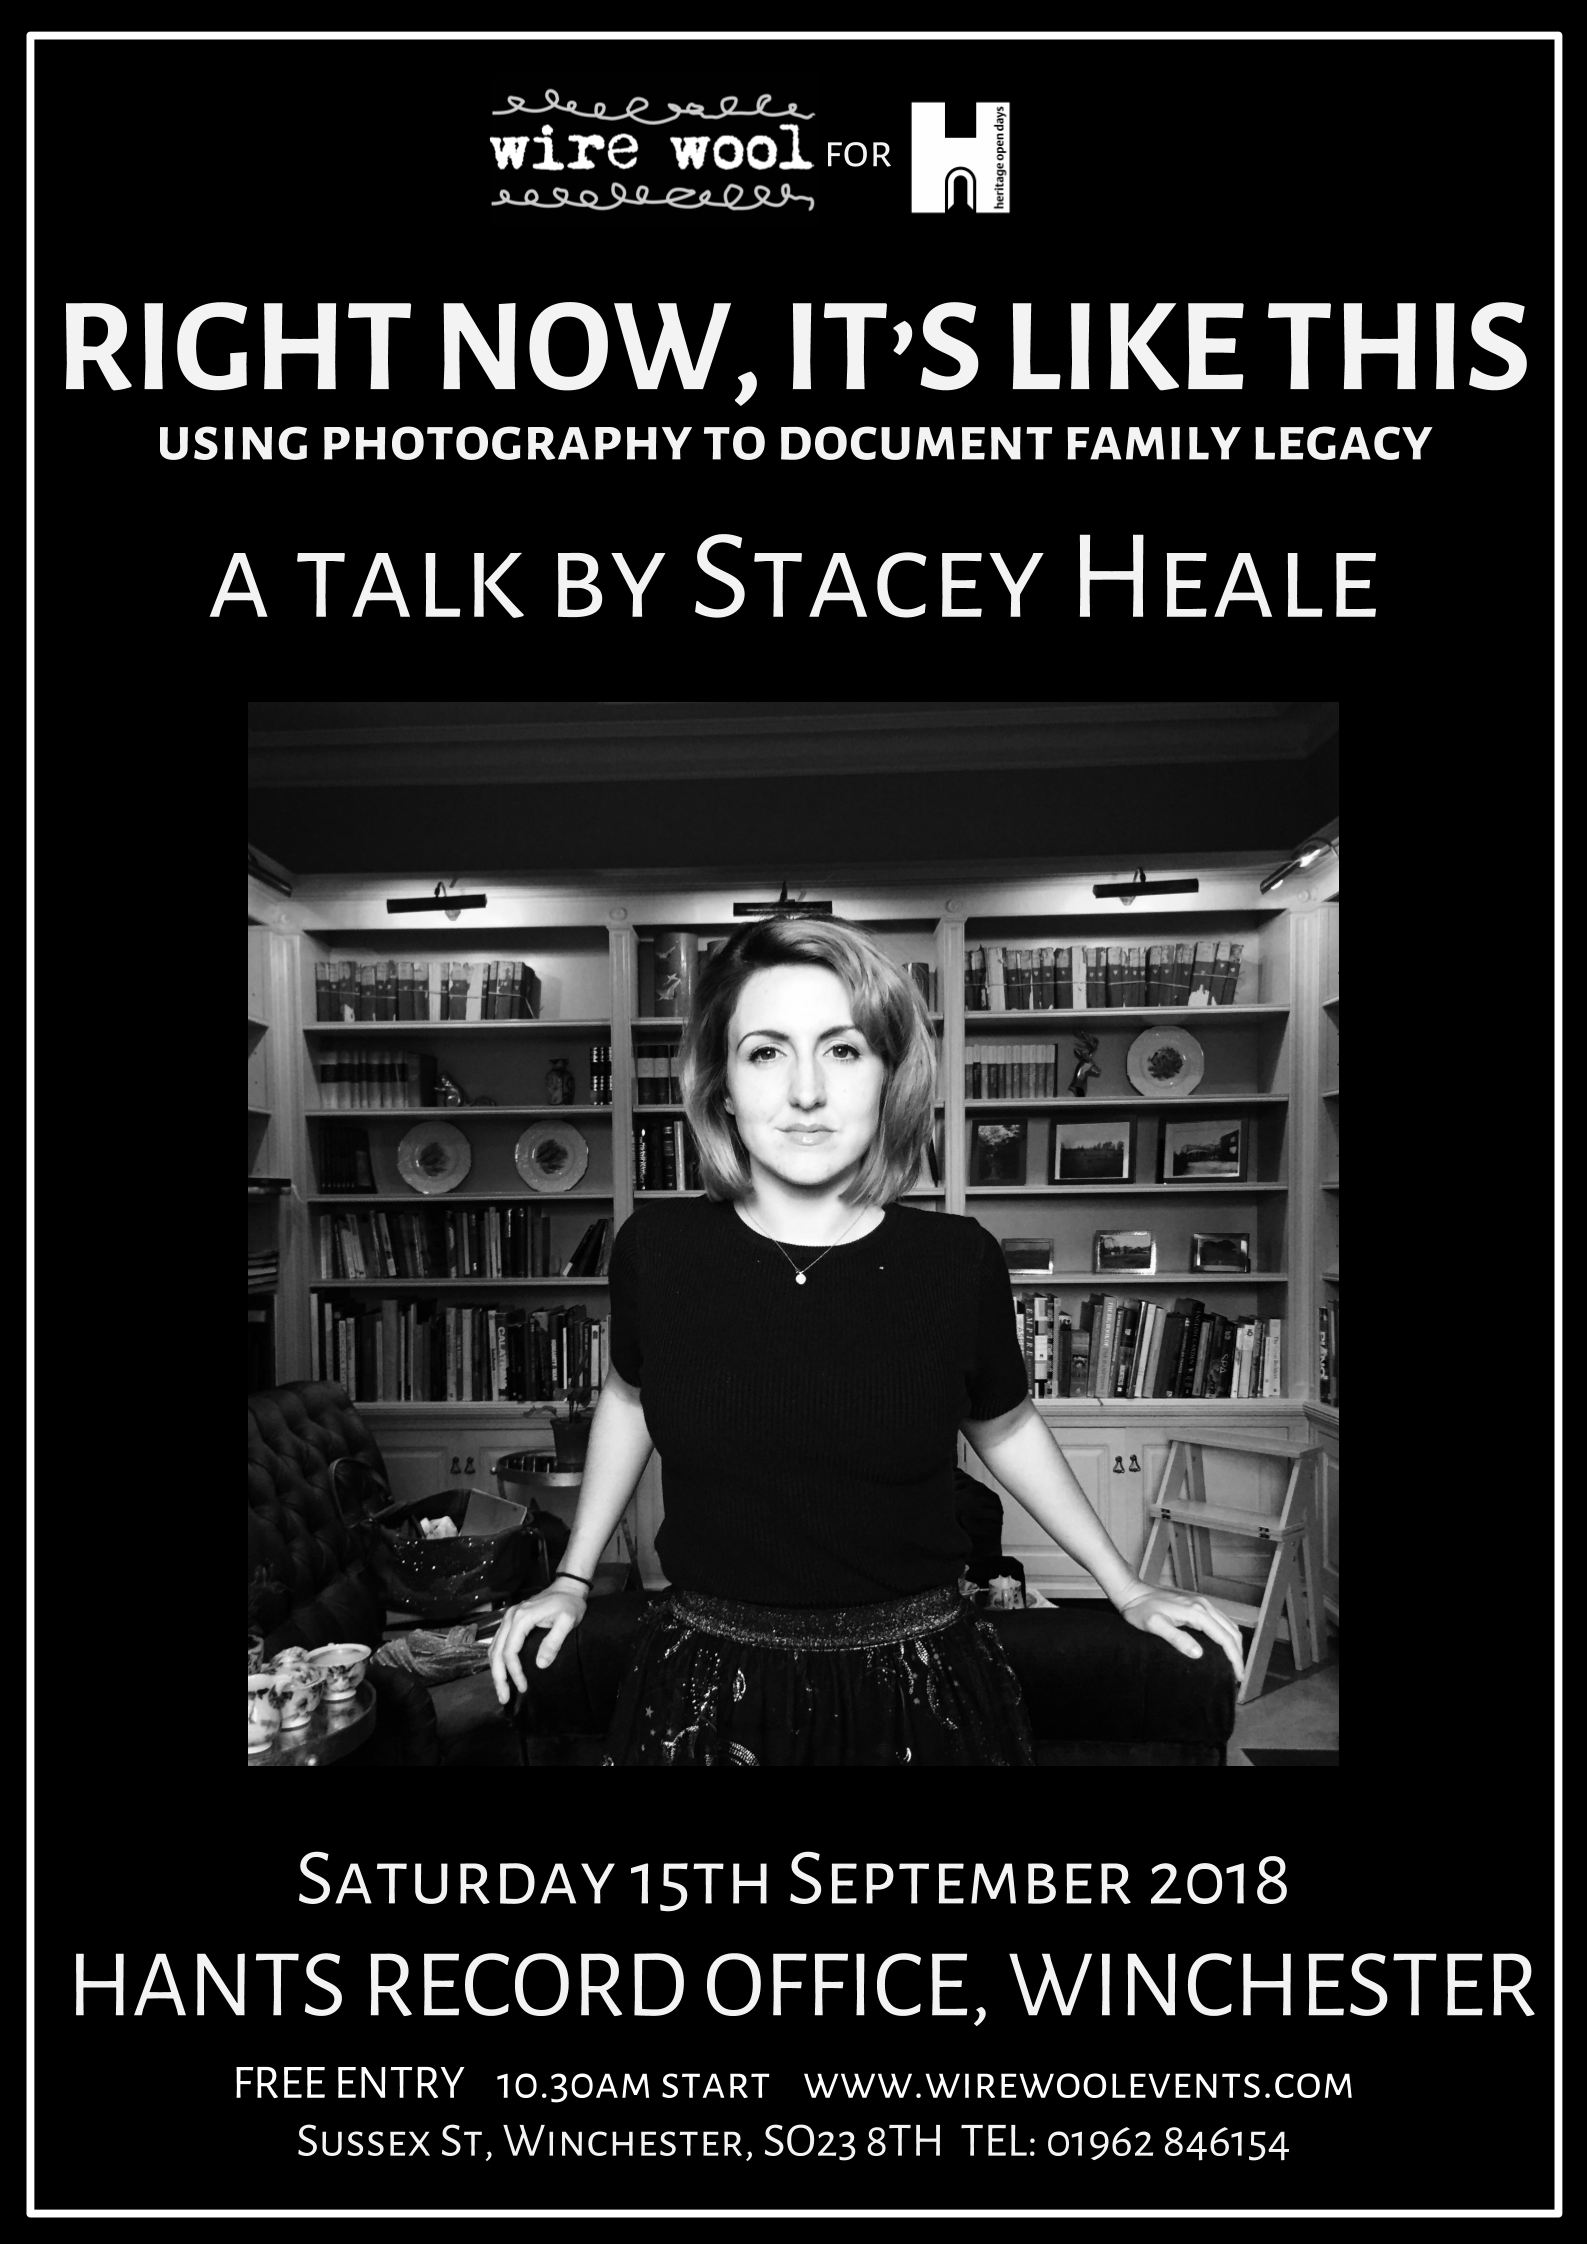 Stacey Heale: Right Now, It's Like This  Saturday, September 15, 2018 10:30am Hampshire Records Office